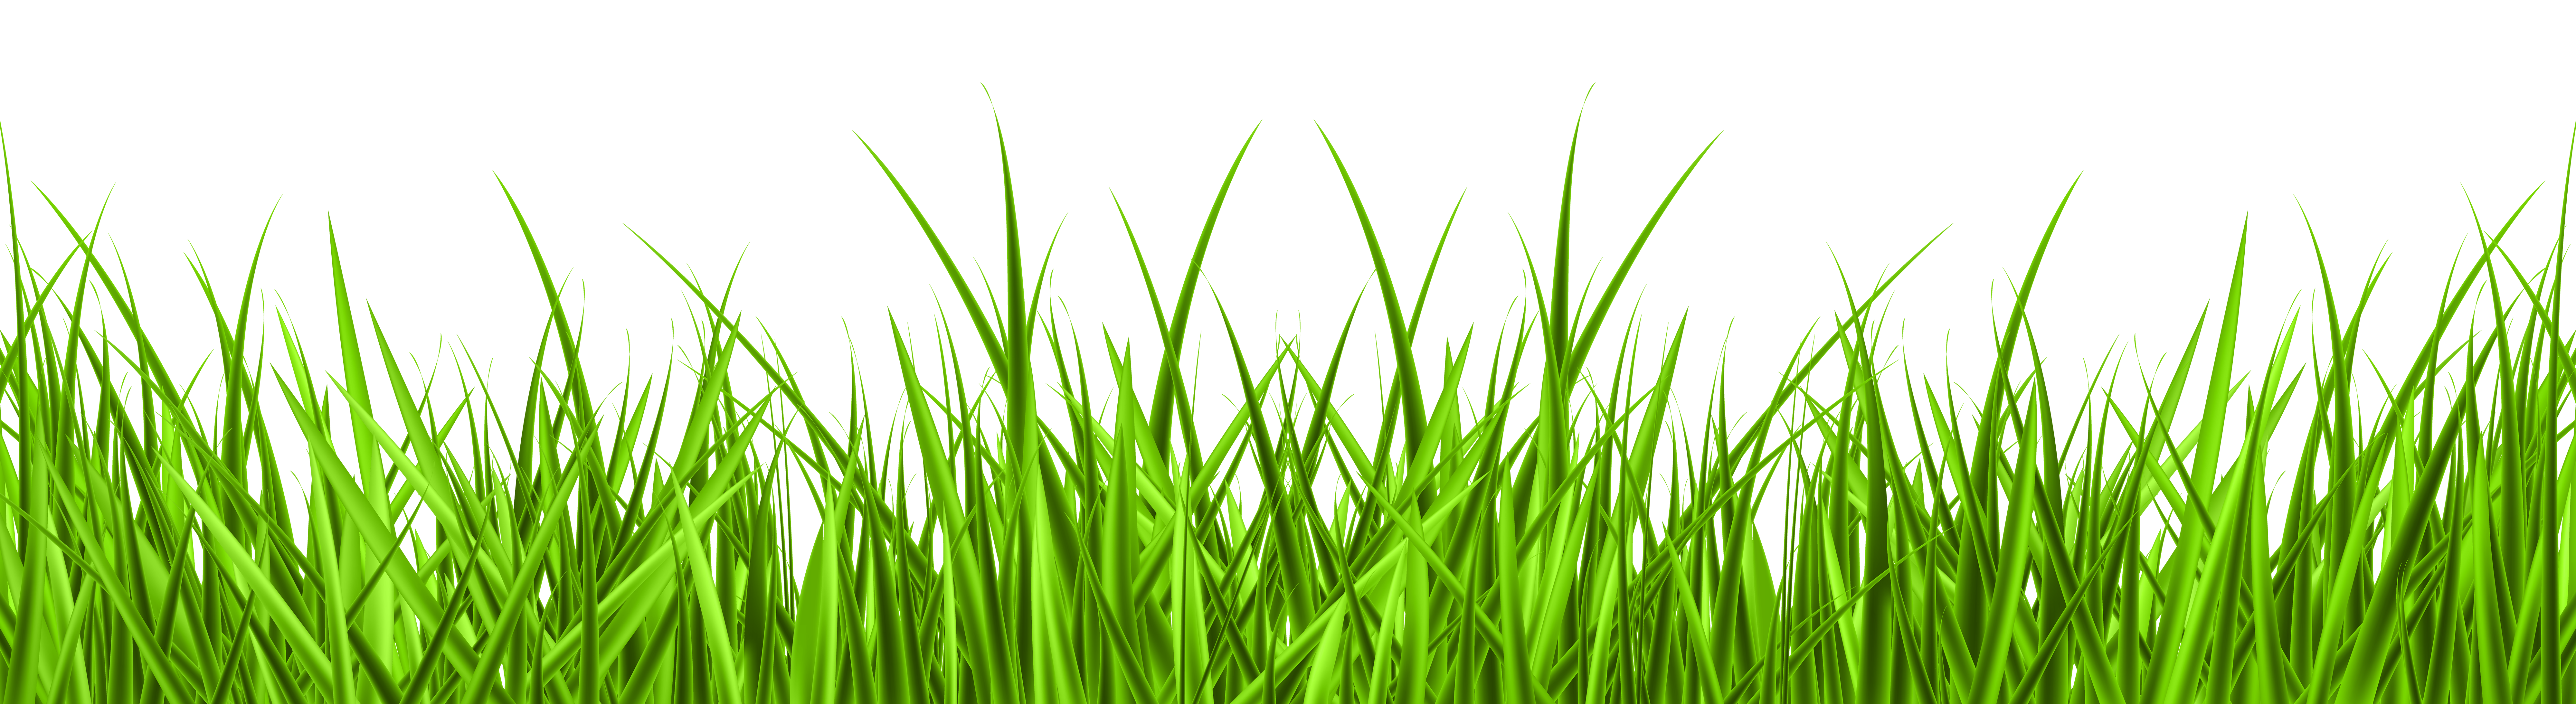 Grass clip art png. Image gallery yopriceville high